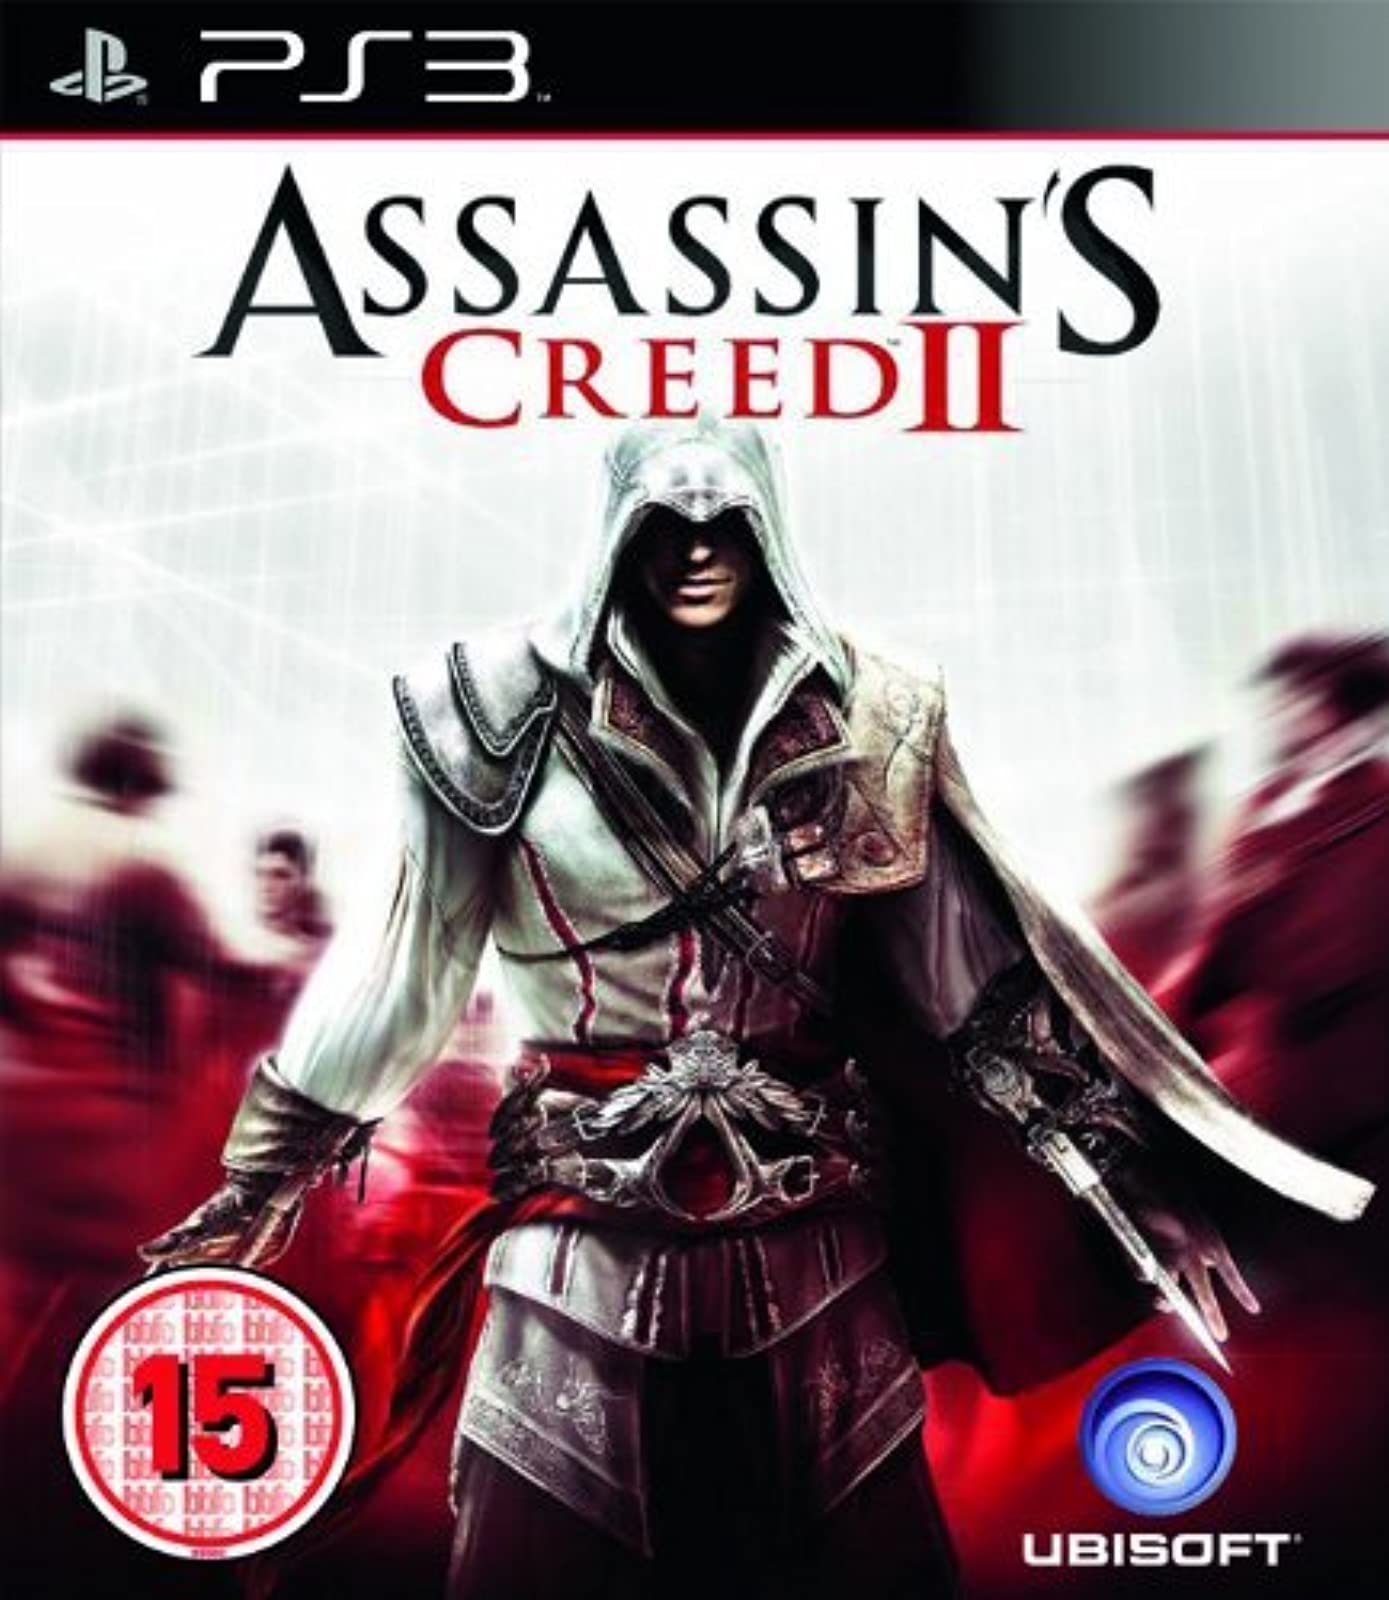 Assassins Creed II PS3 Fighting For PlayStation 3